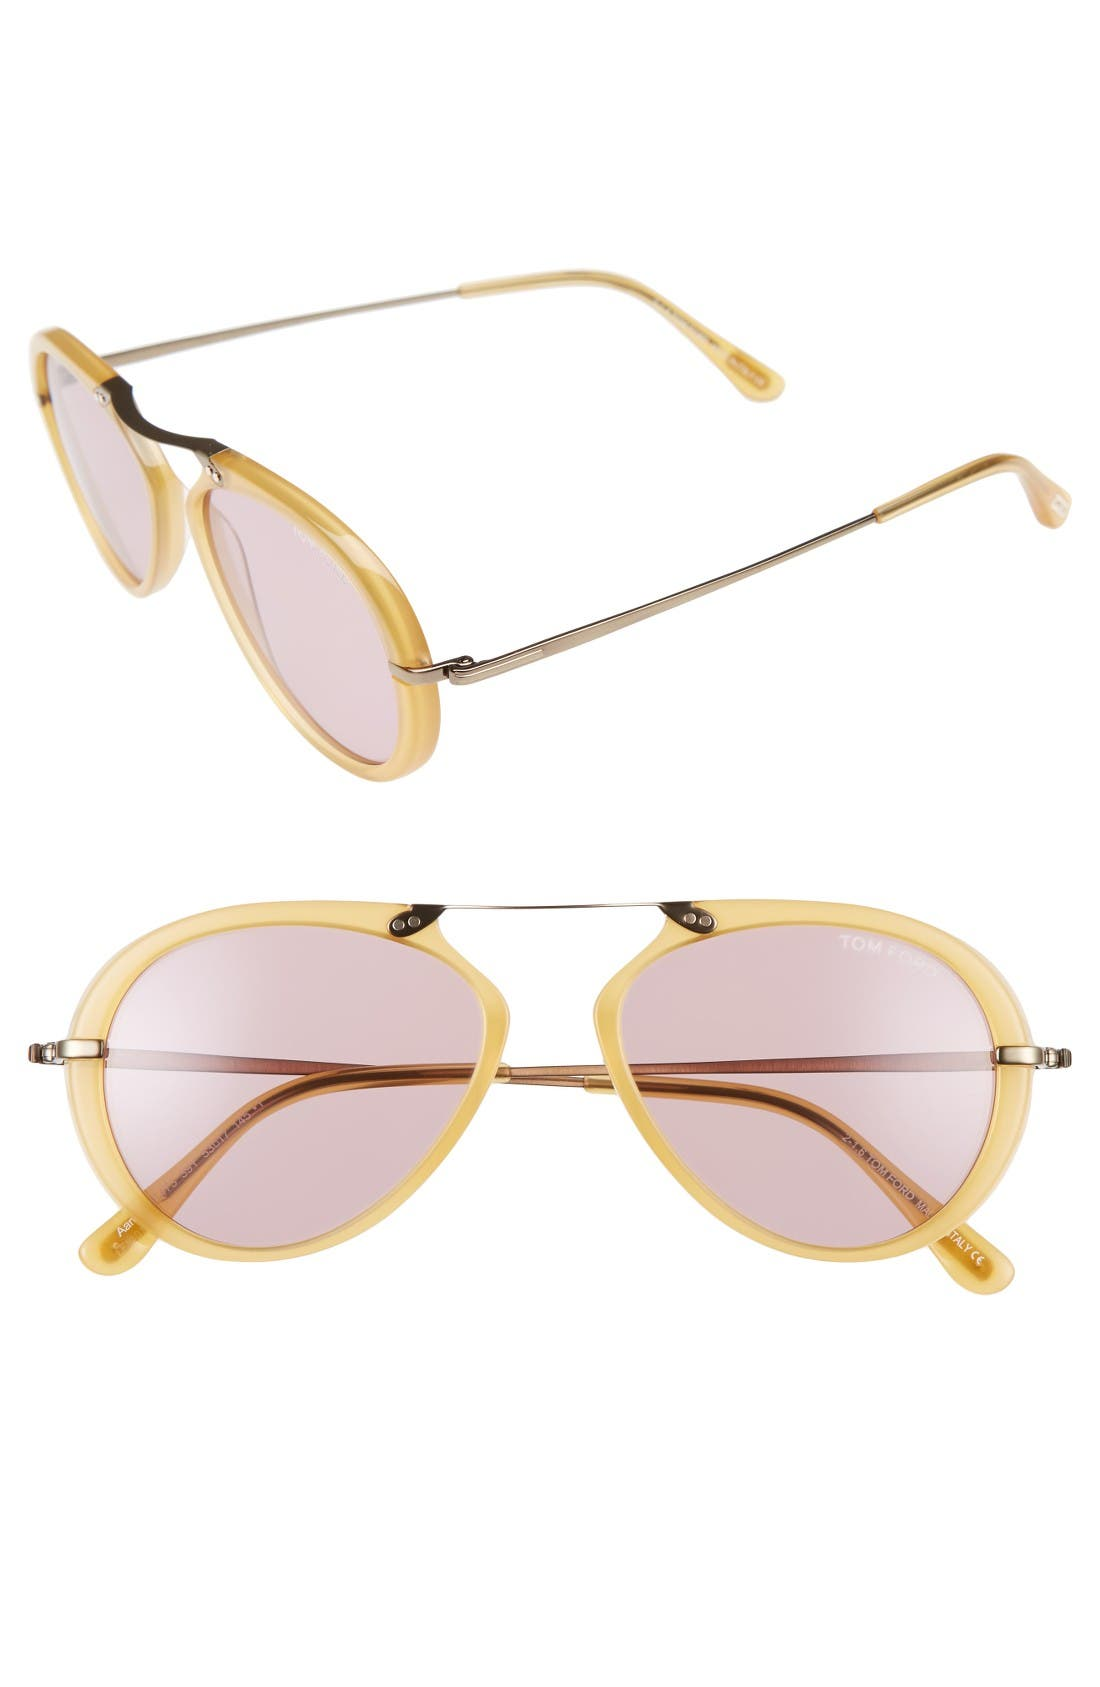 Main Image - Tom Ford 'Aaron' 53mm Sunglasses